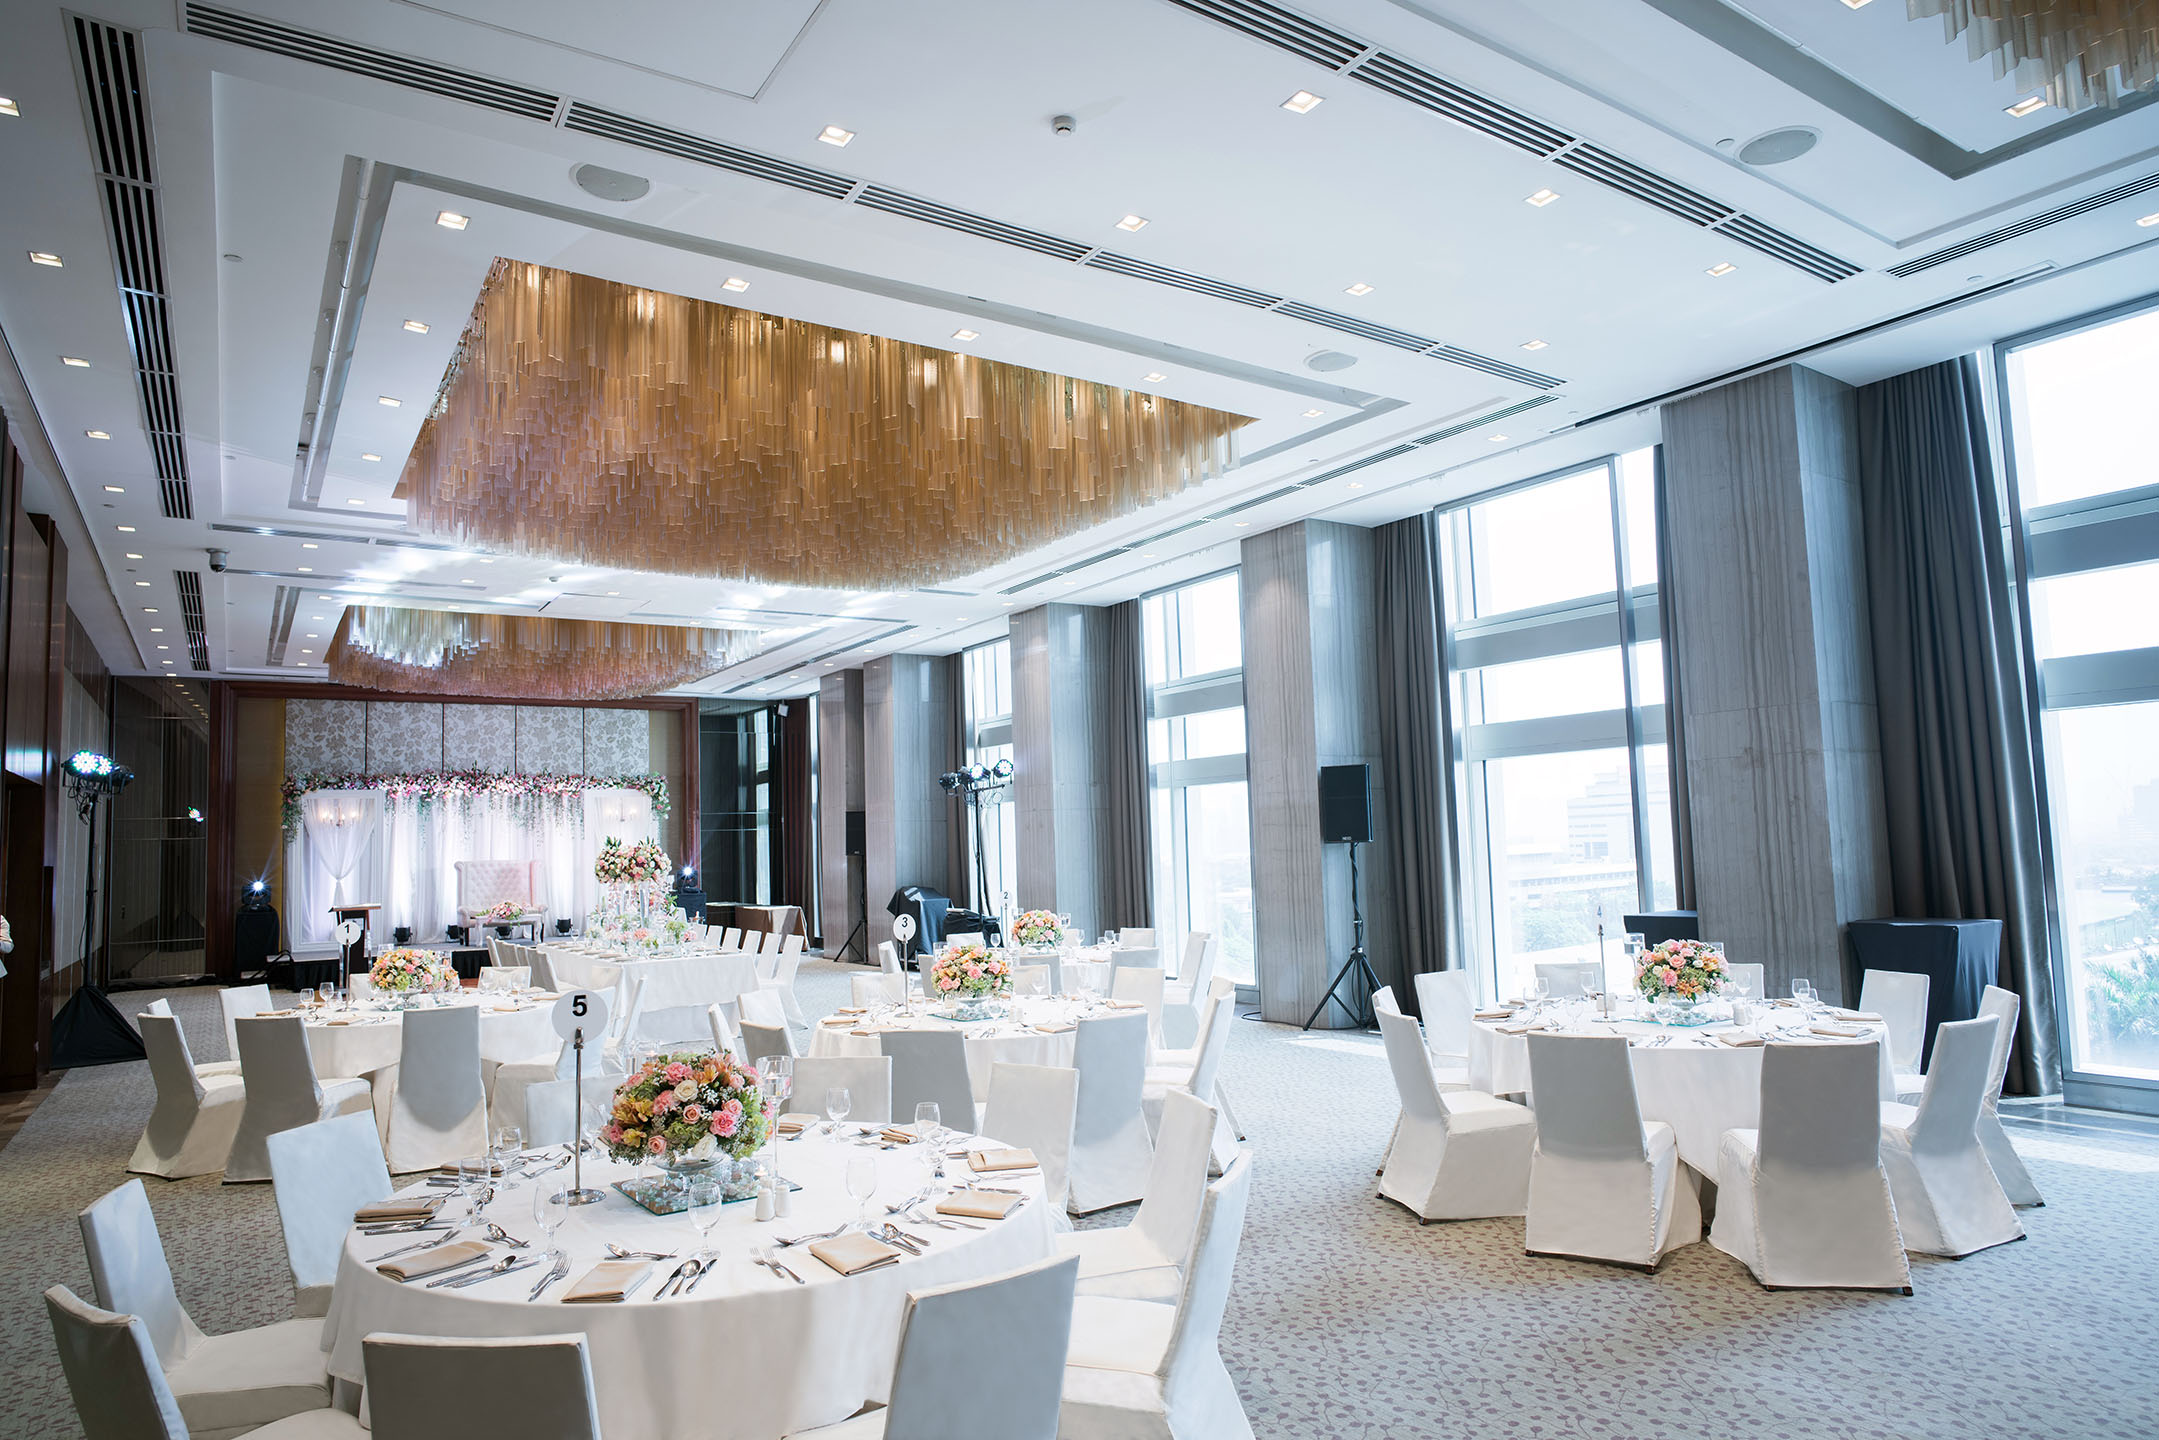 The Marco Polo Ortigas ballroom all ready to welcome newly married couples and their guests